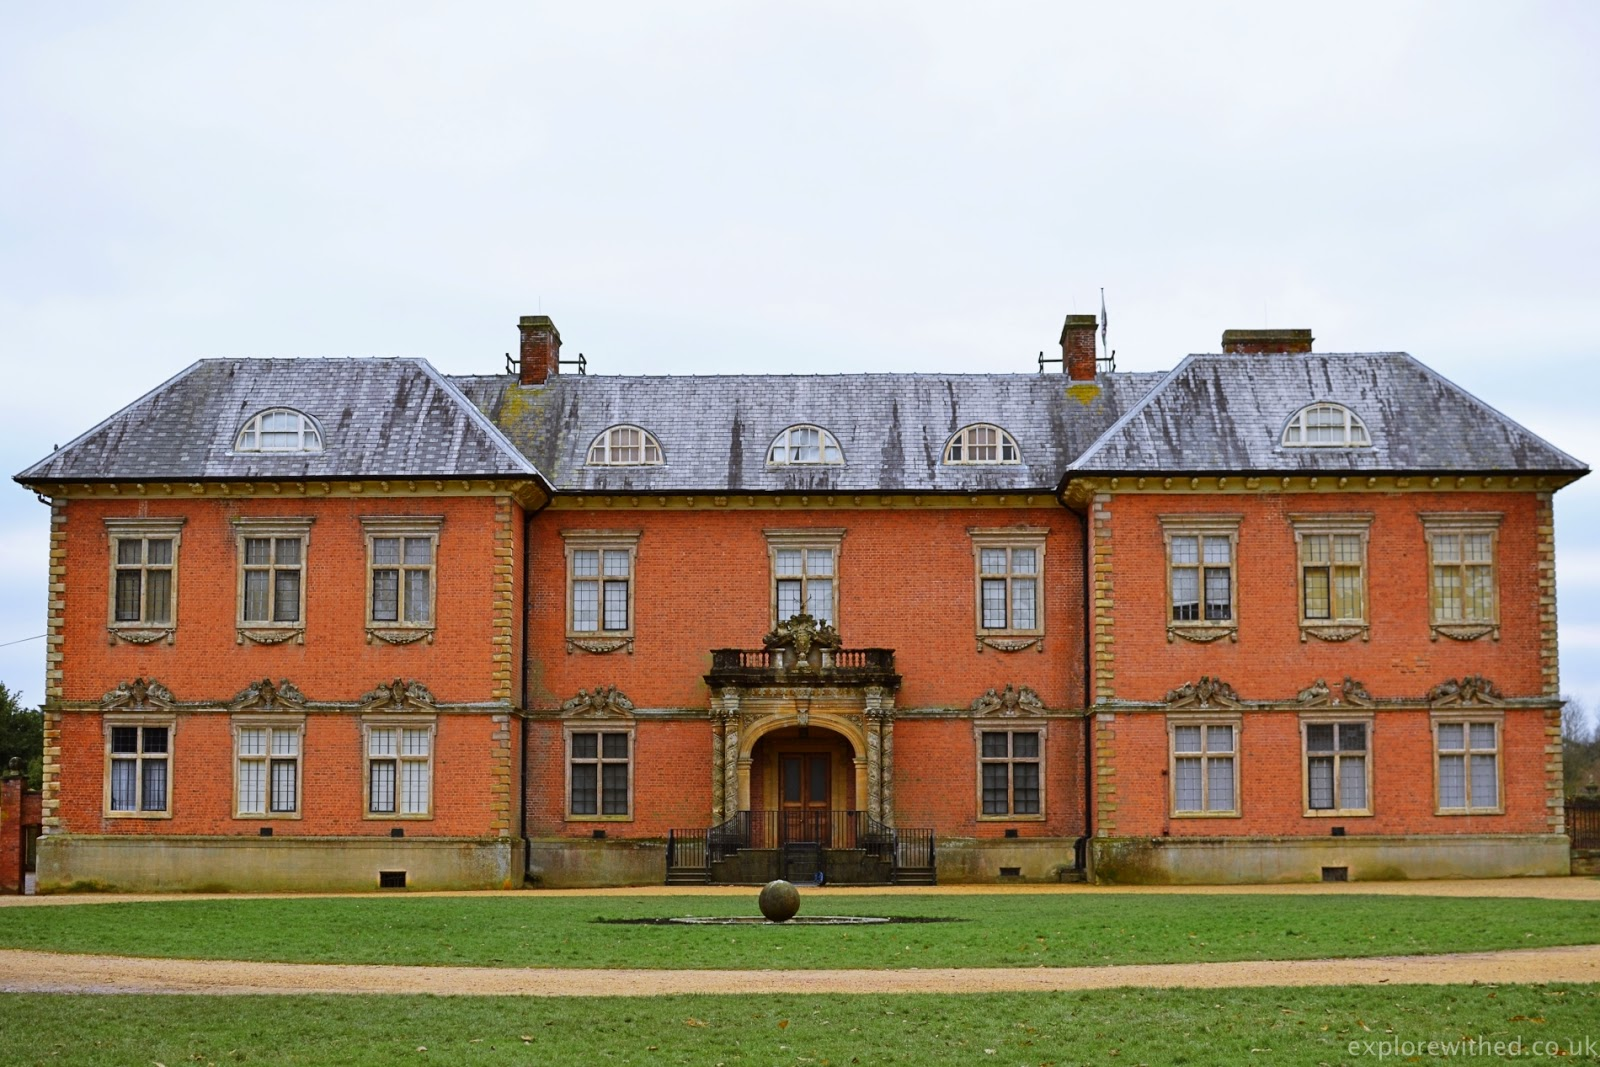 Tredegar House National Trust building in Newport